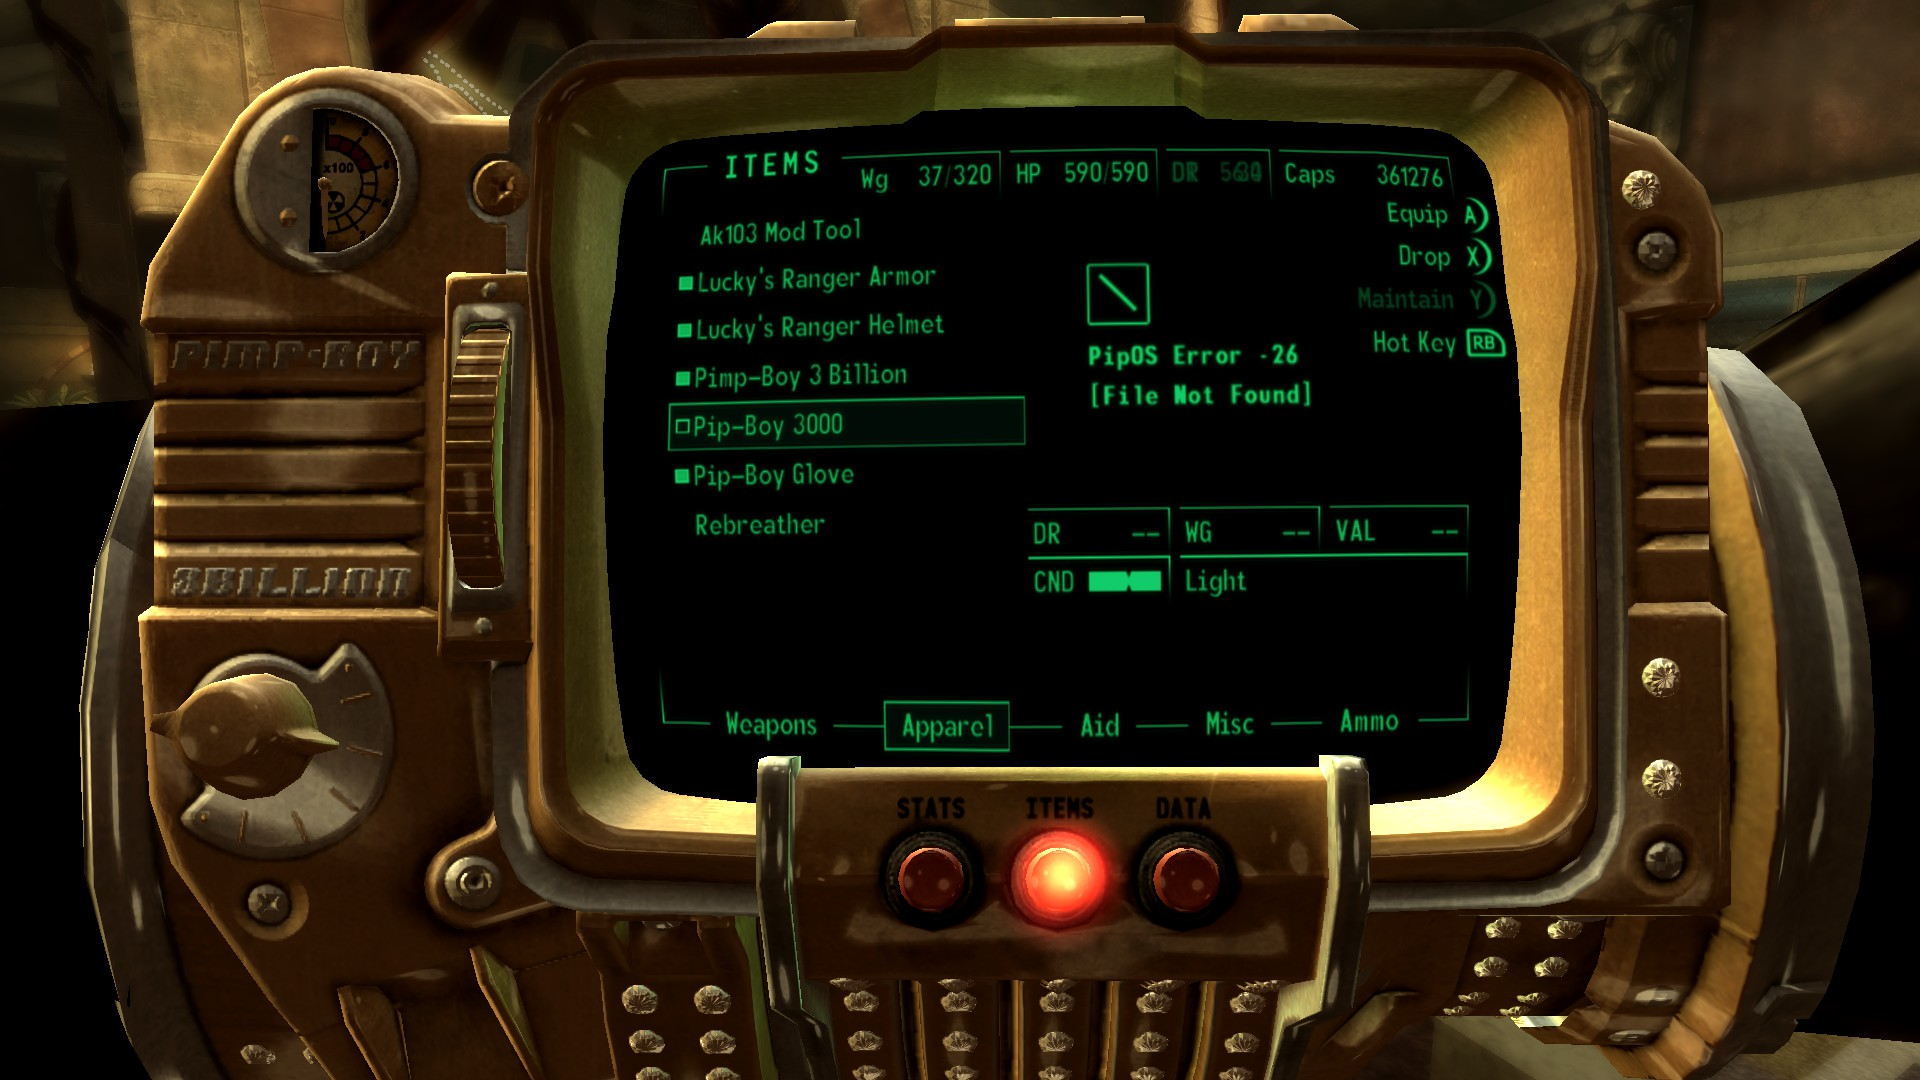 Fallout 3 Mods Reddit